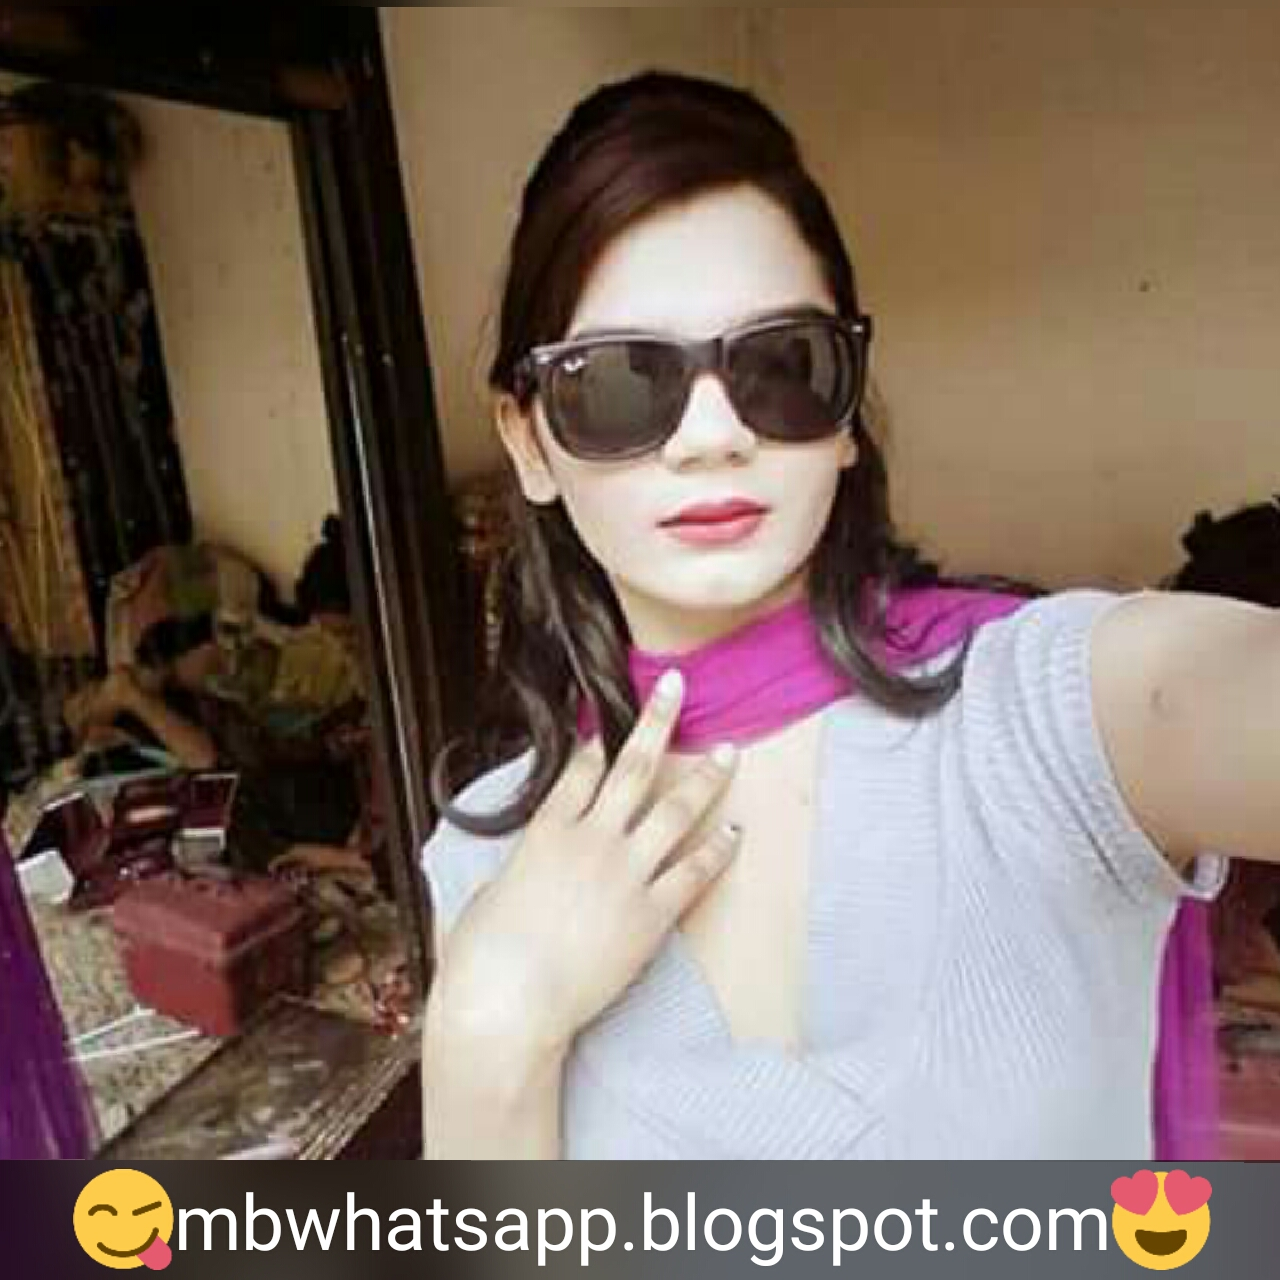 beautiful pakistani girls whatsapp patel hospital girls whatsapp no numbers no num nbr pakistani girls cute imo no wallpaper photo image pics cute